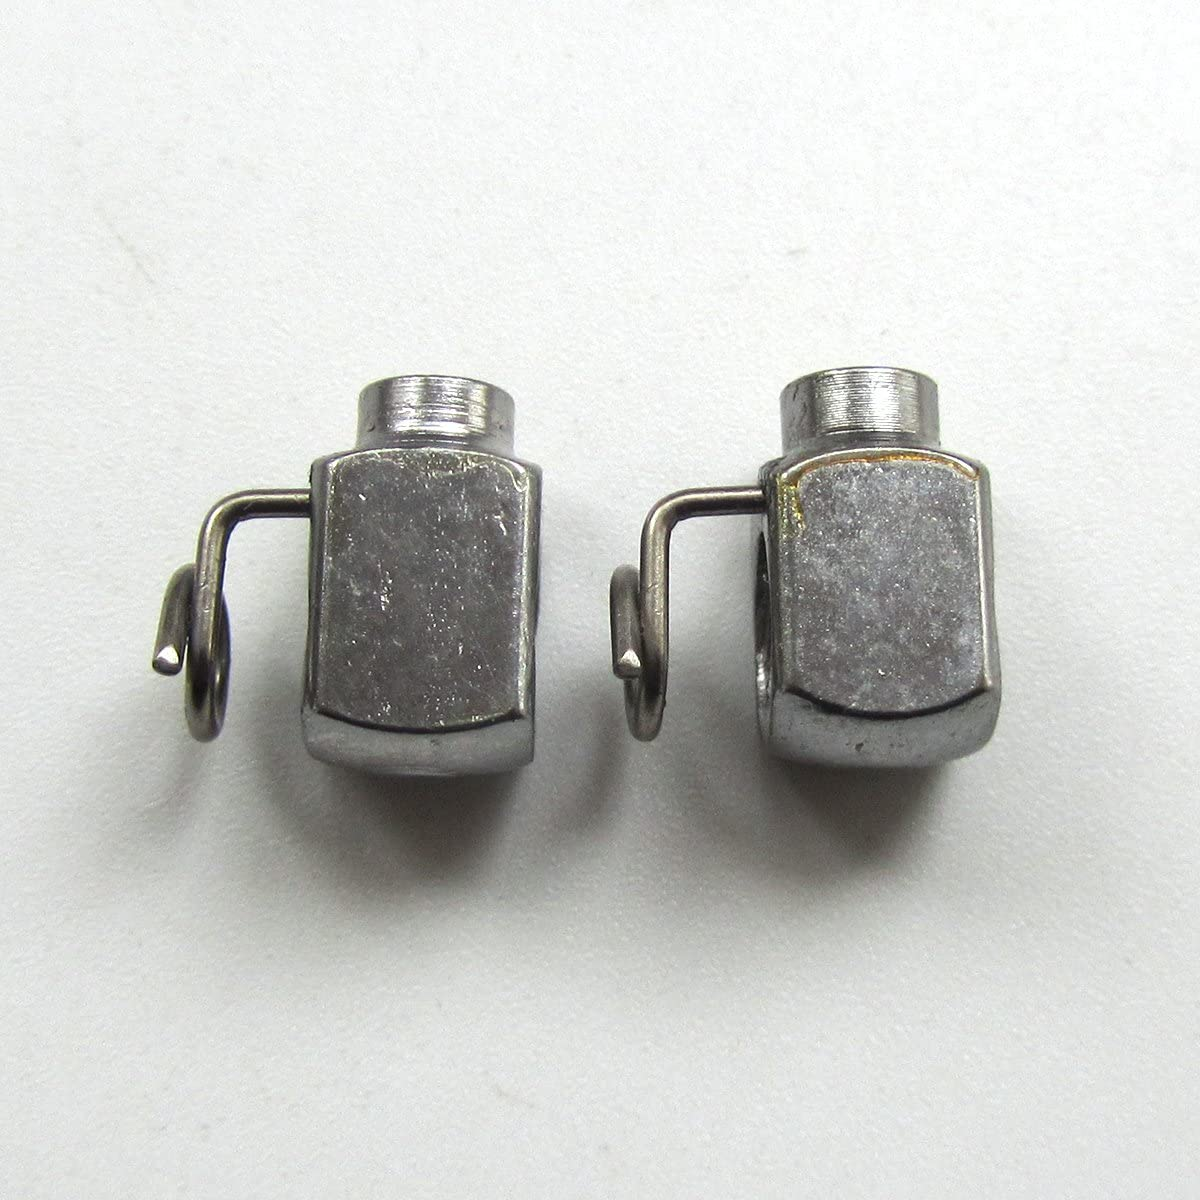 2 PCS NEEDLE CLAMP W//GUIDE # HT230670 FOR BARUDAN EMBROIDERY MACHINE